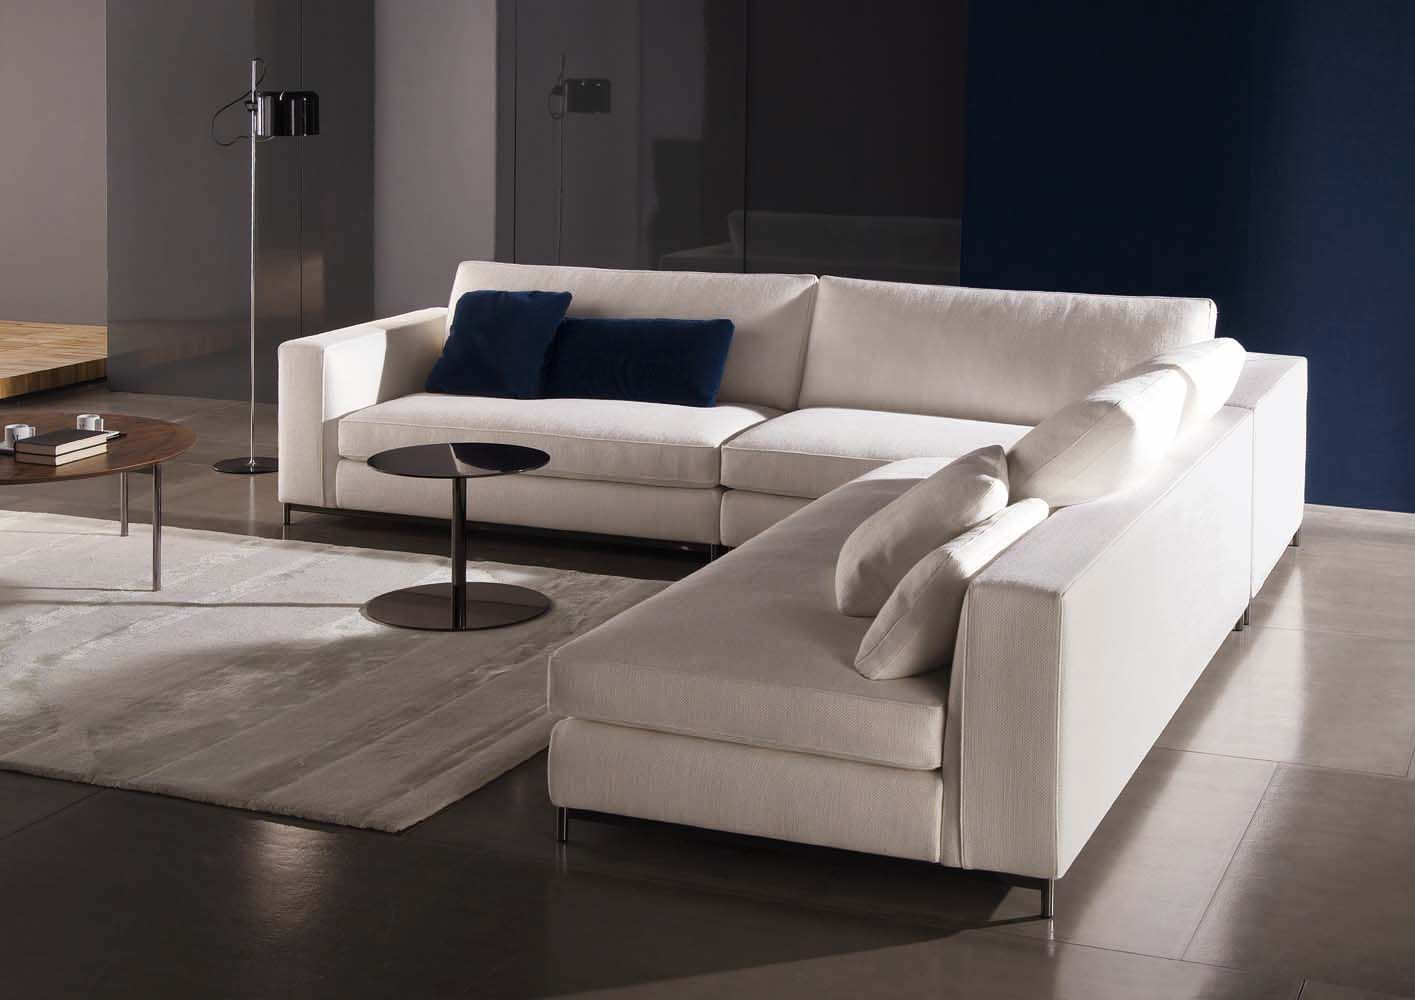 Space Invader Couch L Shape Sofa Decor Inspirations Pinterest Console Furniture